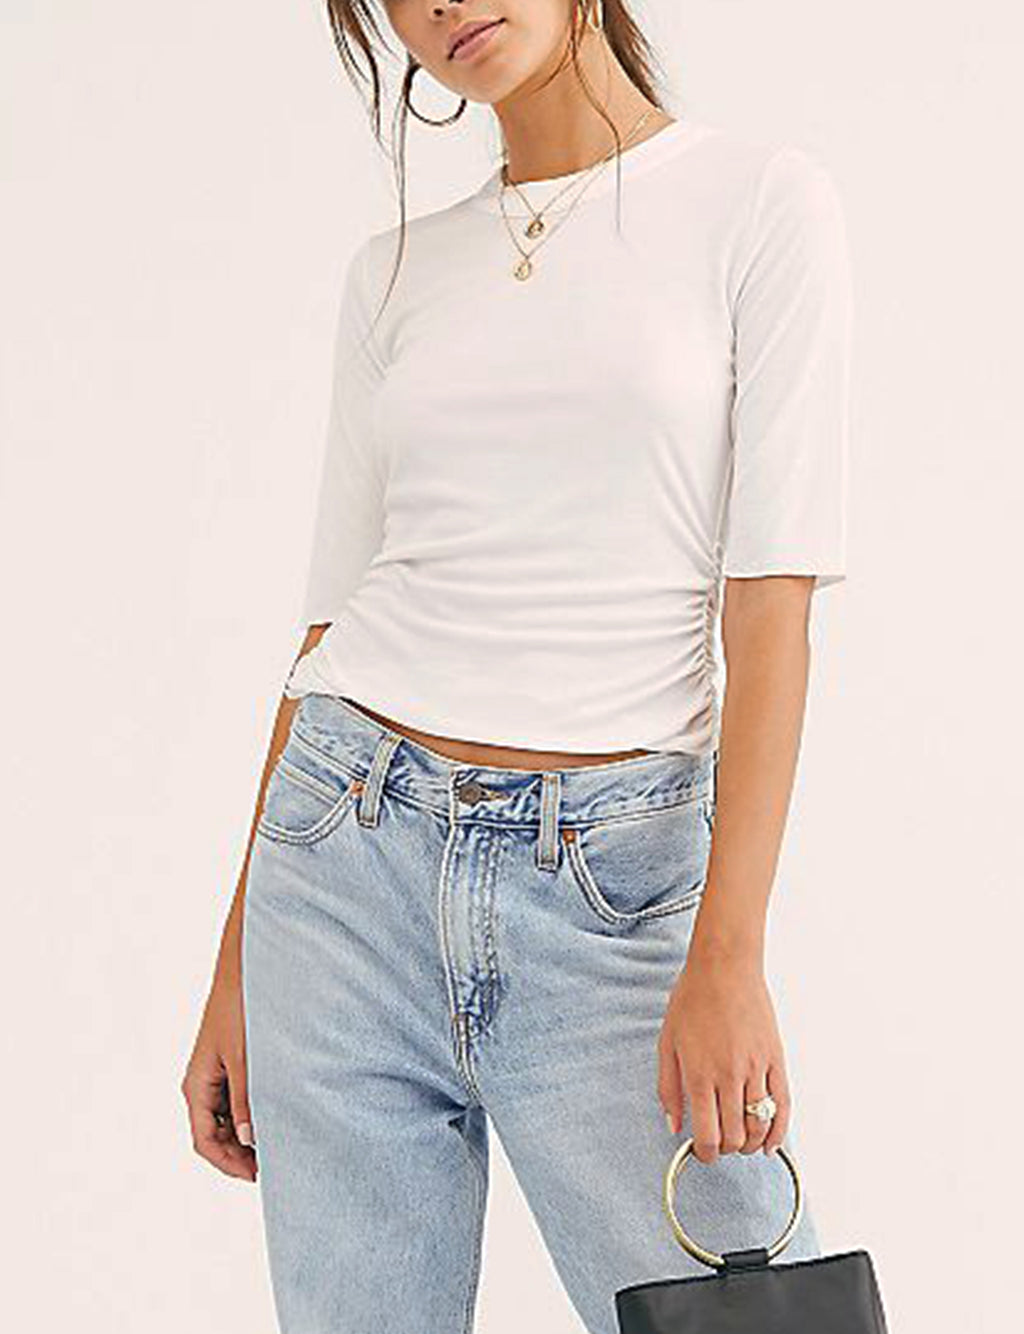 Free People Talk To me Tee in White